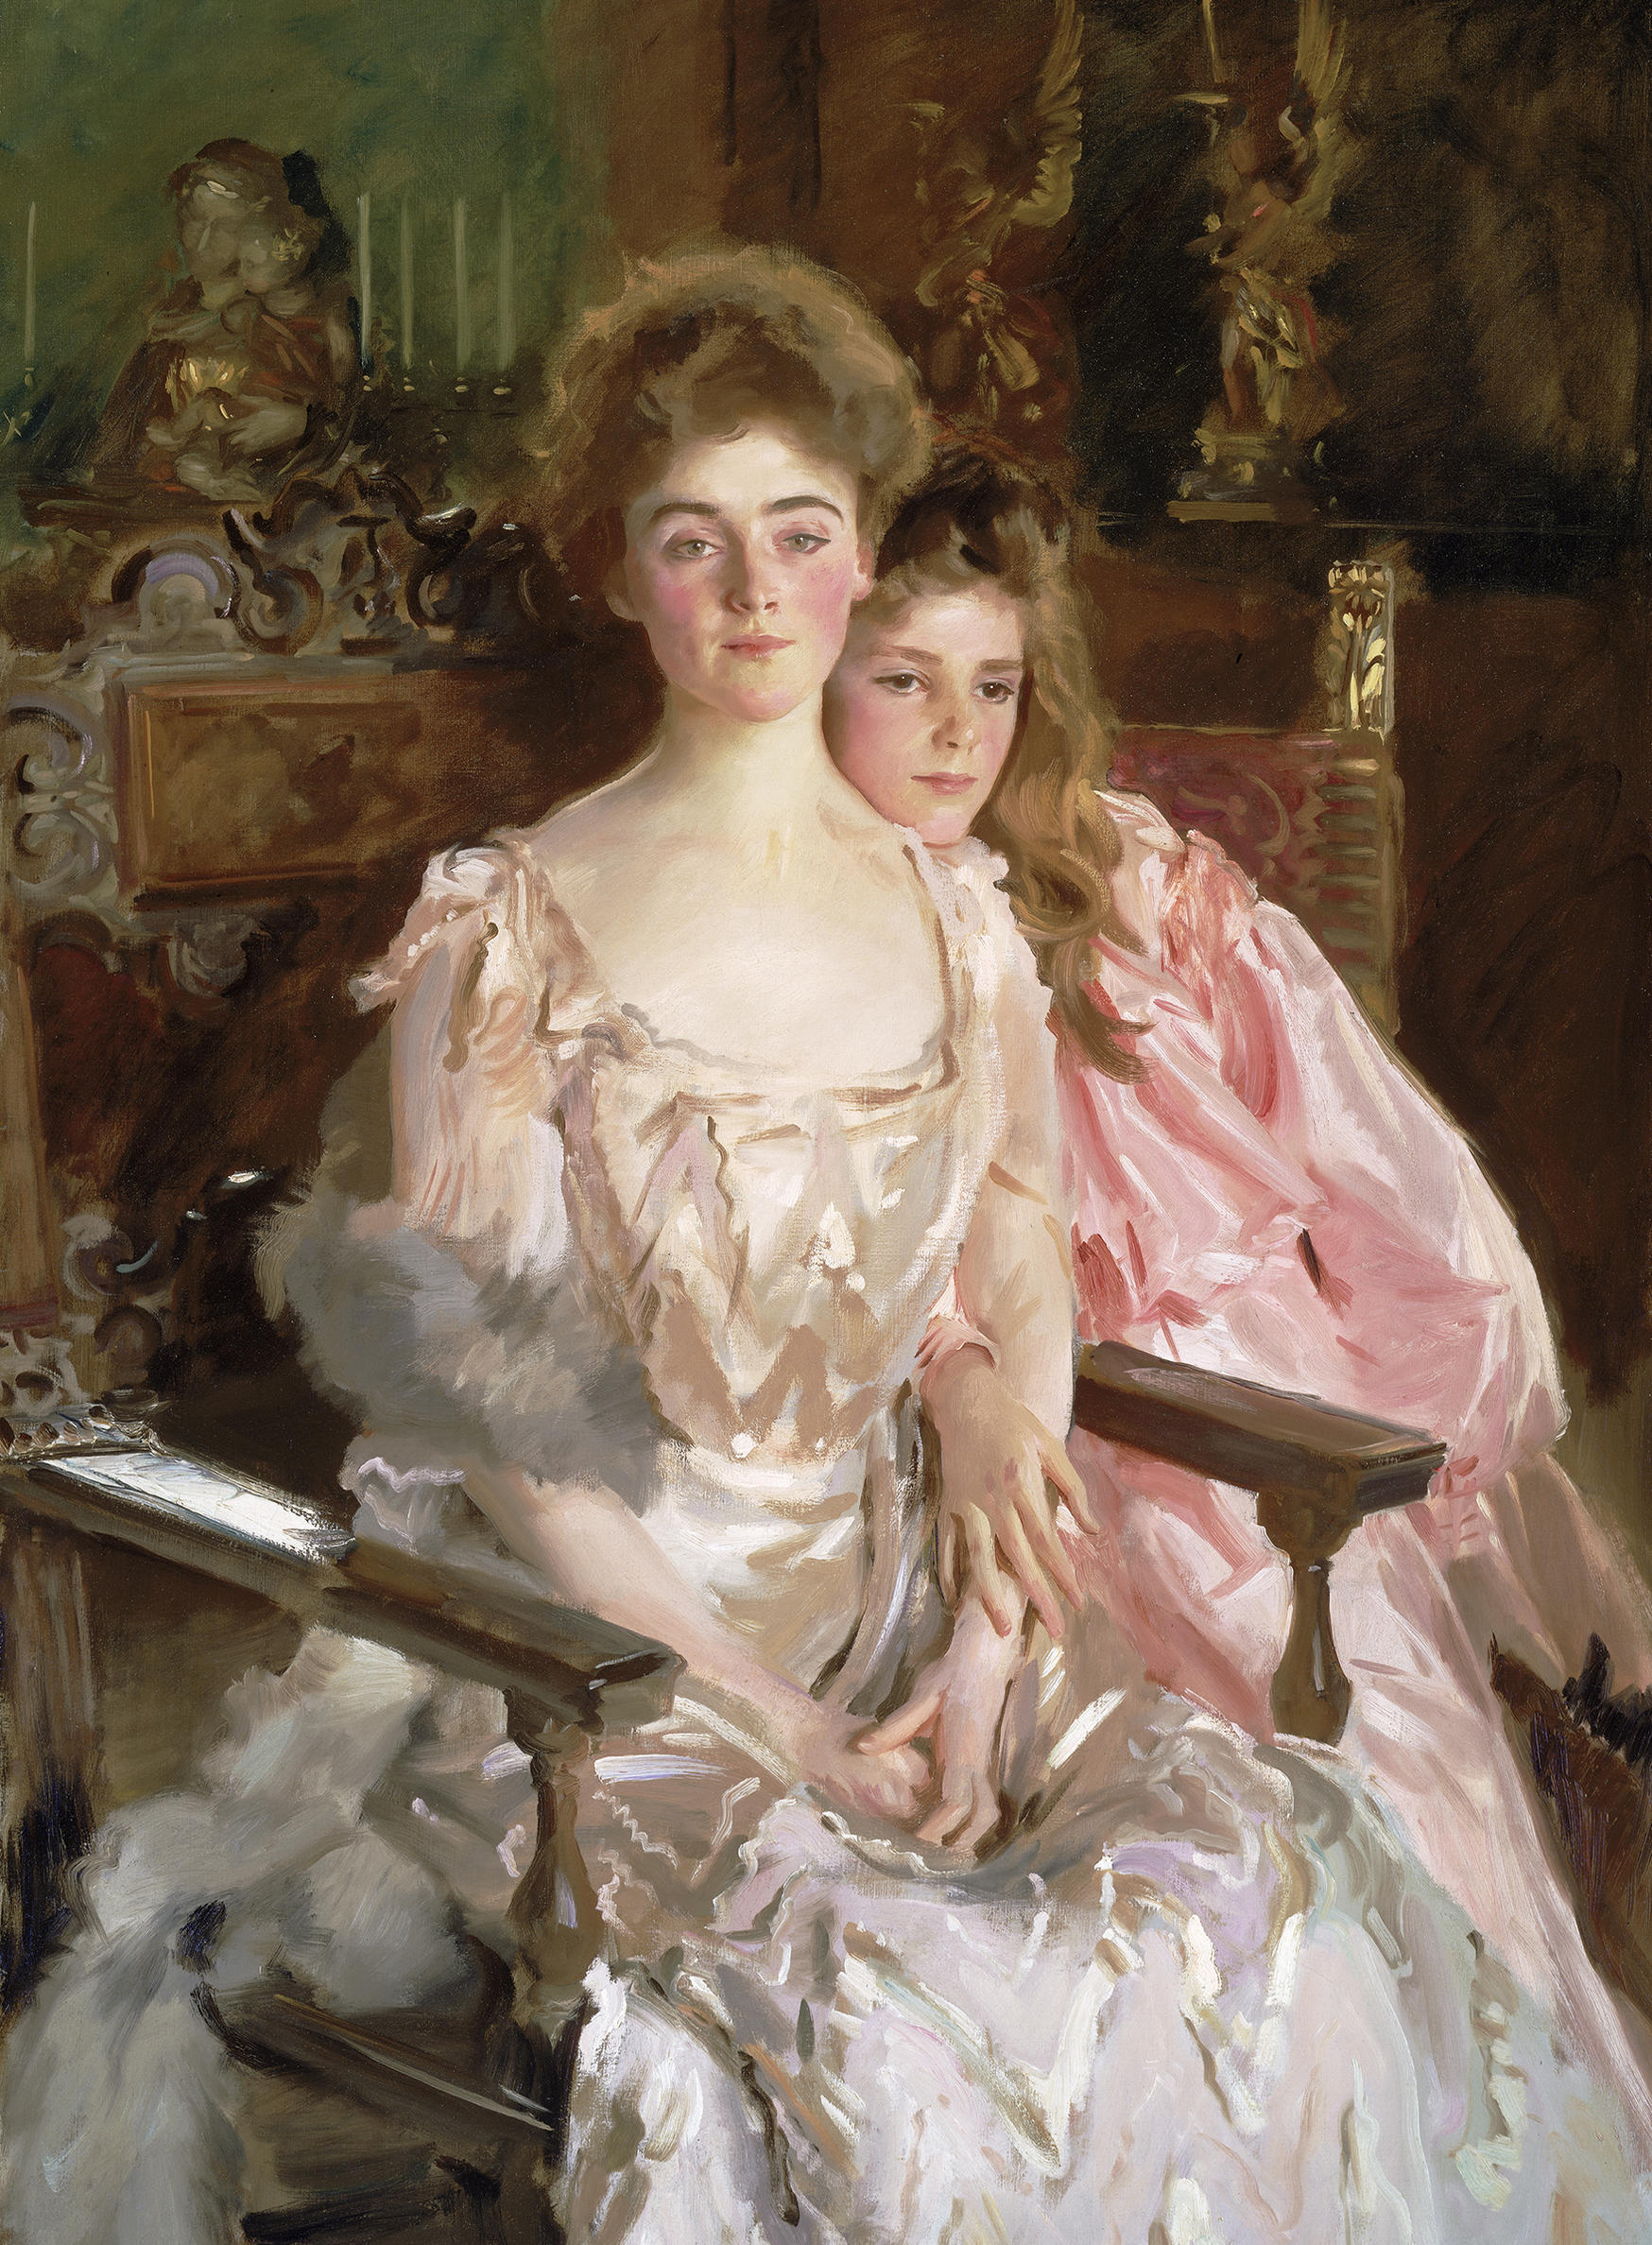 John Singer Sargent (American, 1856-1925), Mrs. Fiske Warren and Her Daughter Rachel, 1903.